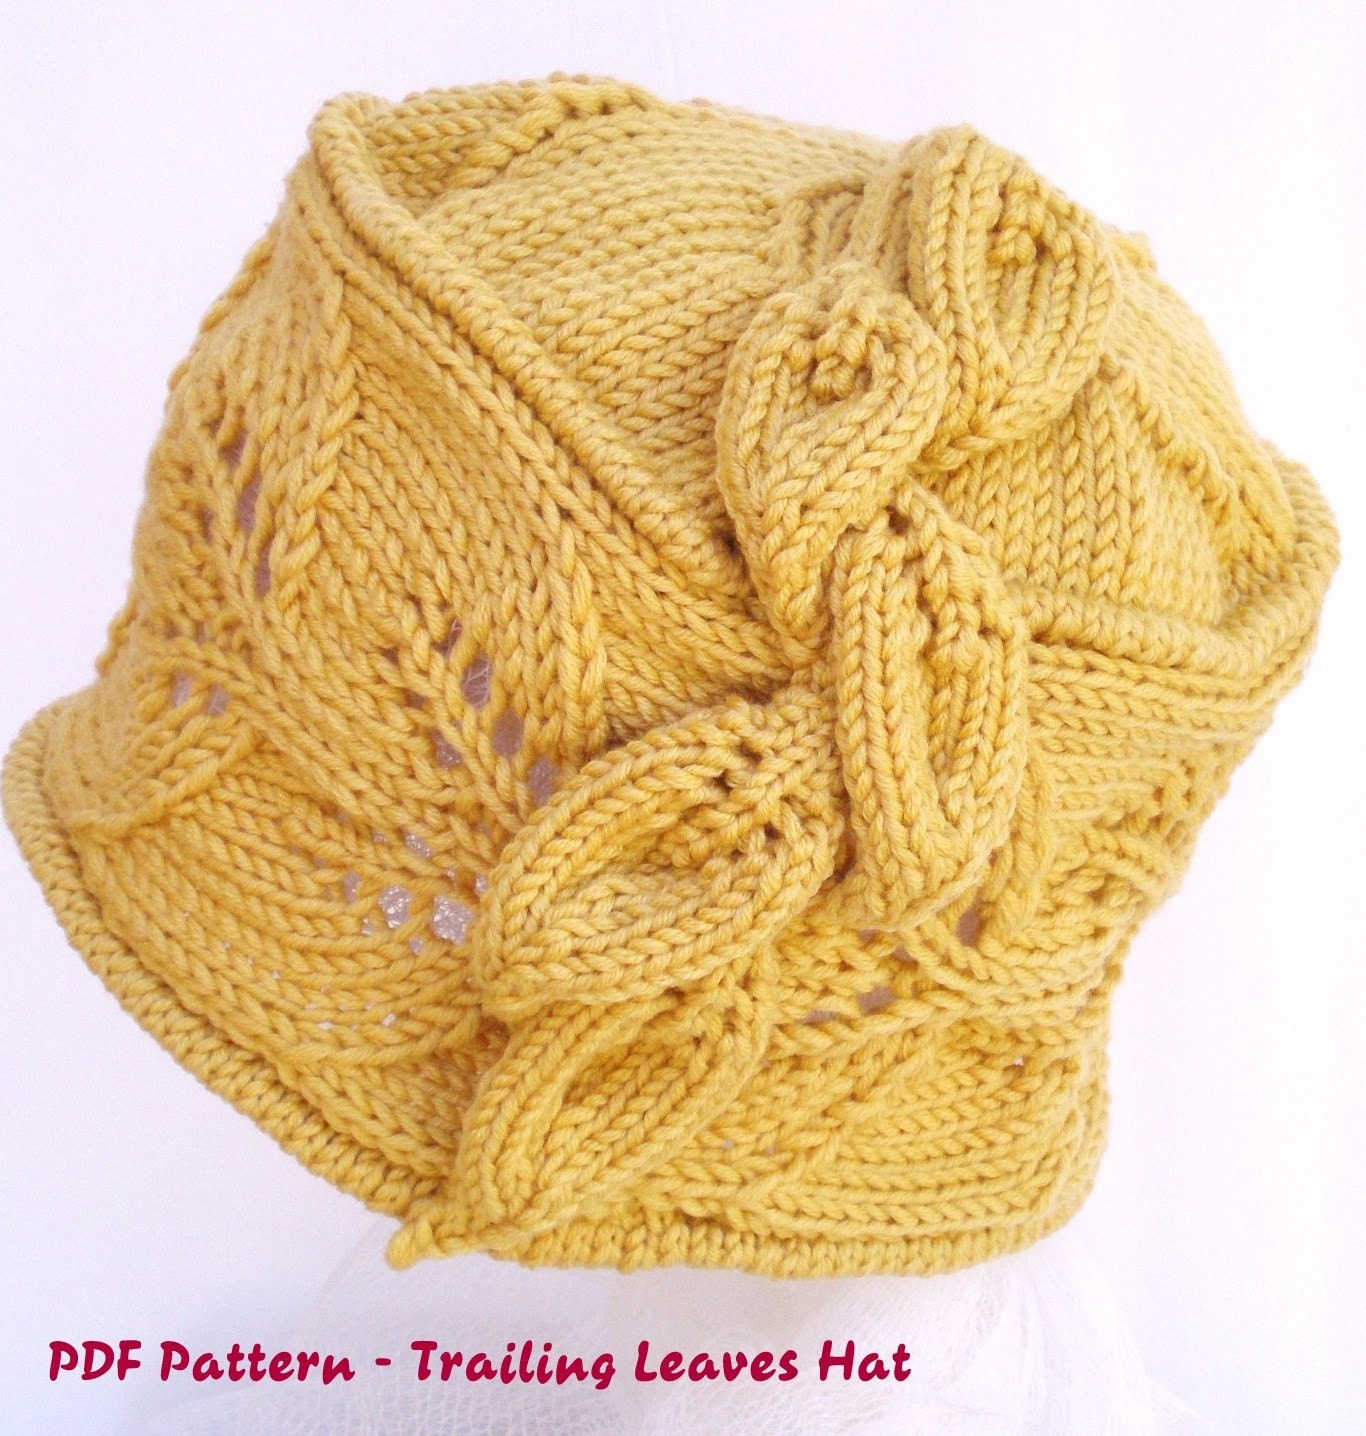 Cloche Hat Pattern Knitting : PDF Knitting Pattern Wool Lace Cloche Hat Trailing Leaves